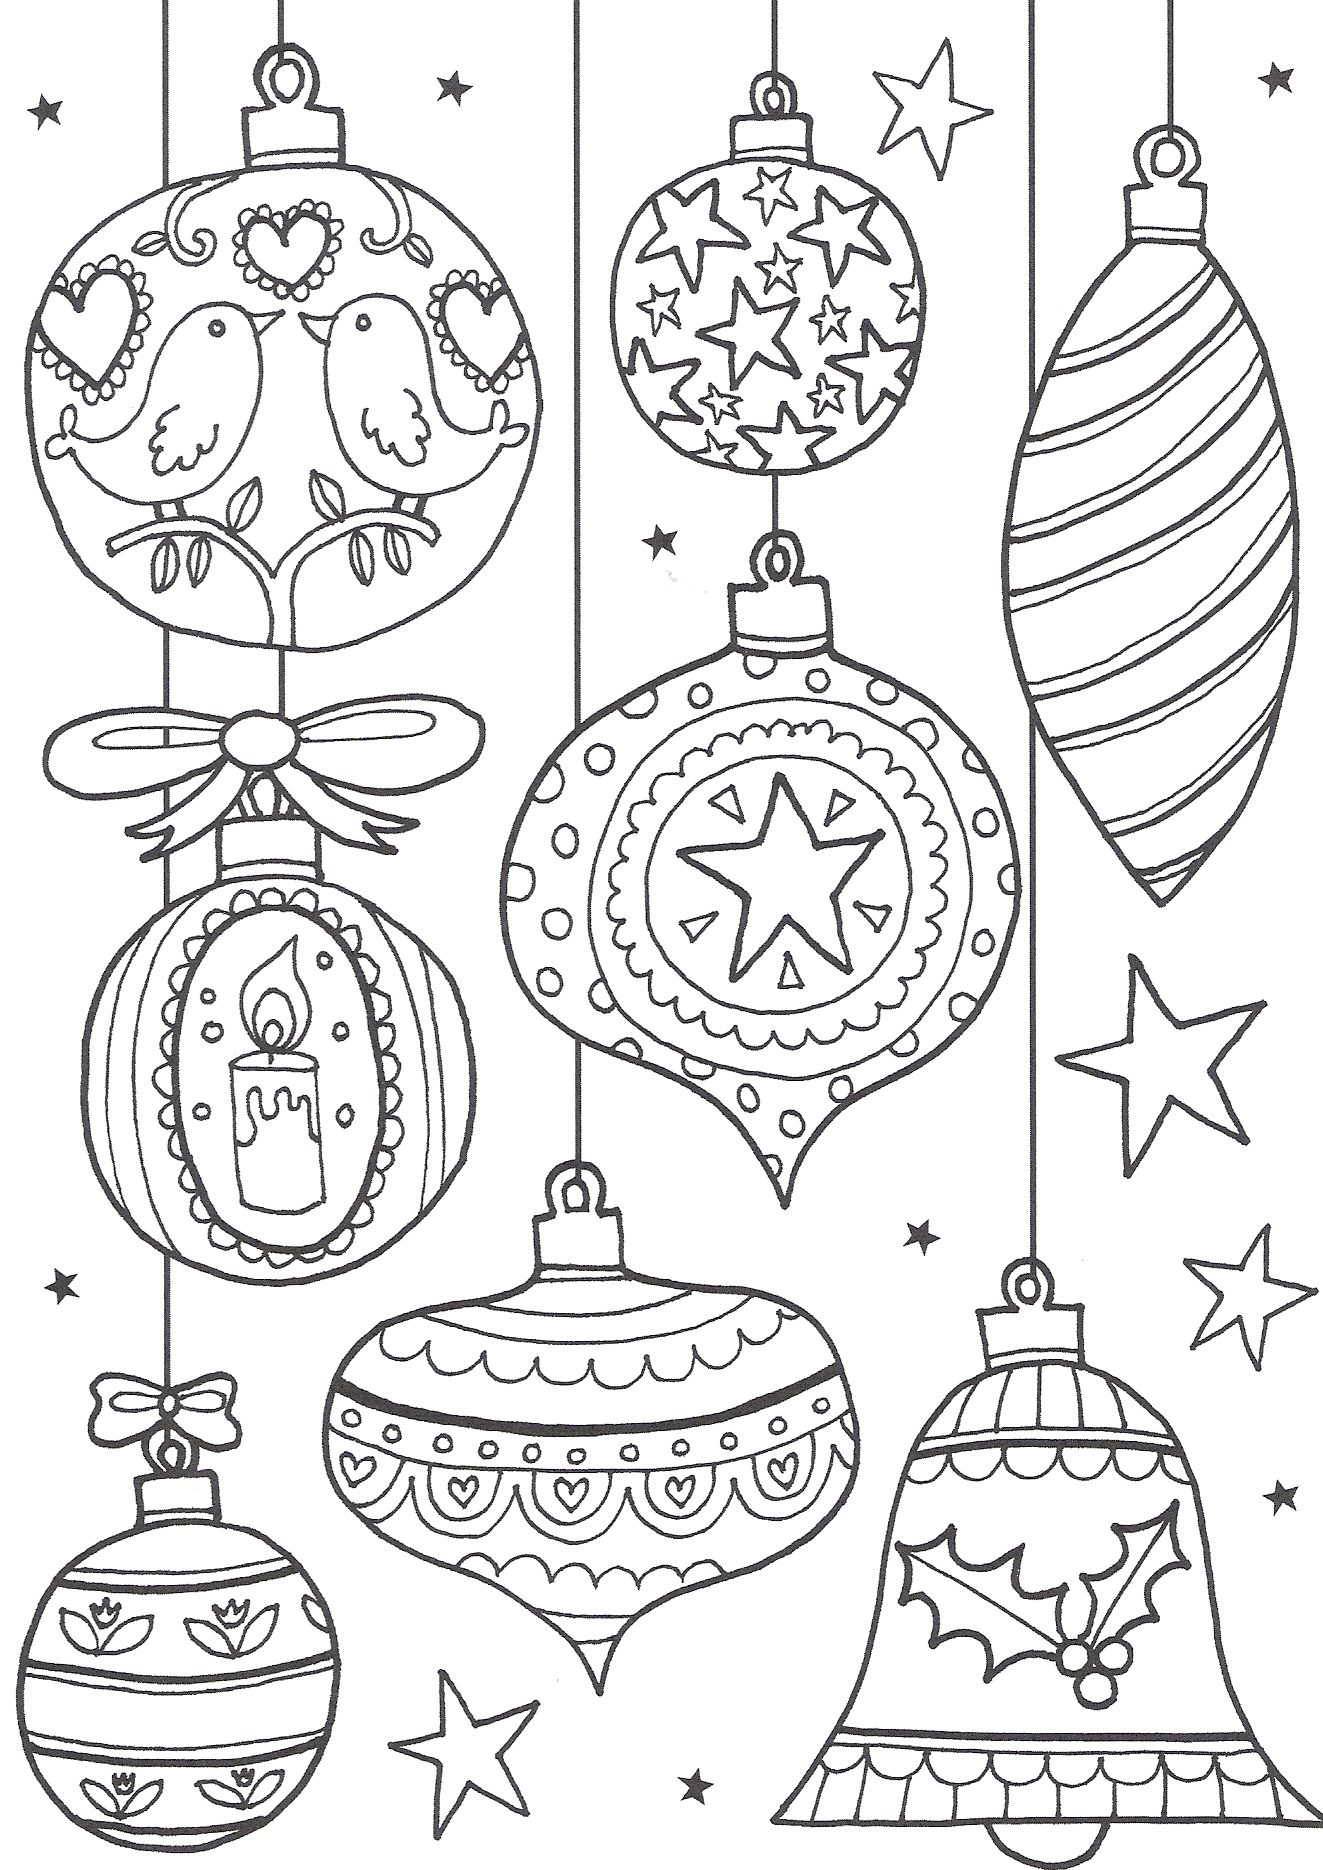 Christmas Coloring Pages Hd With Free Colouring For Adults The Ultimate Roundup